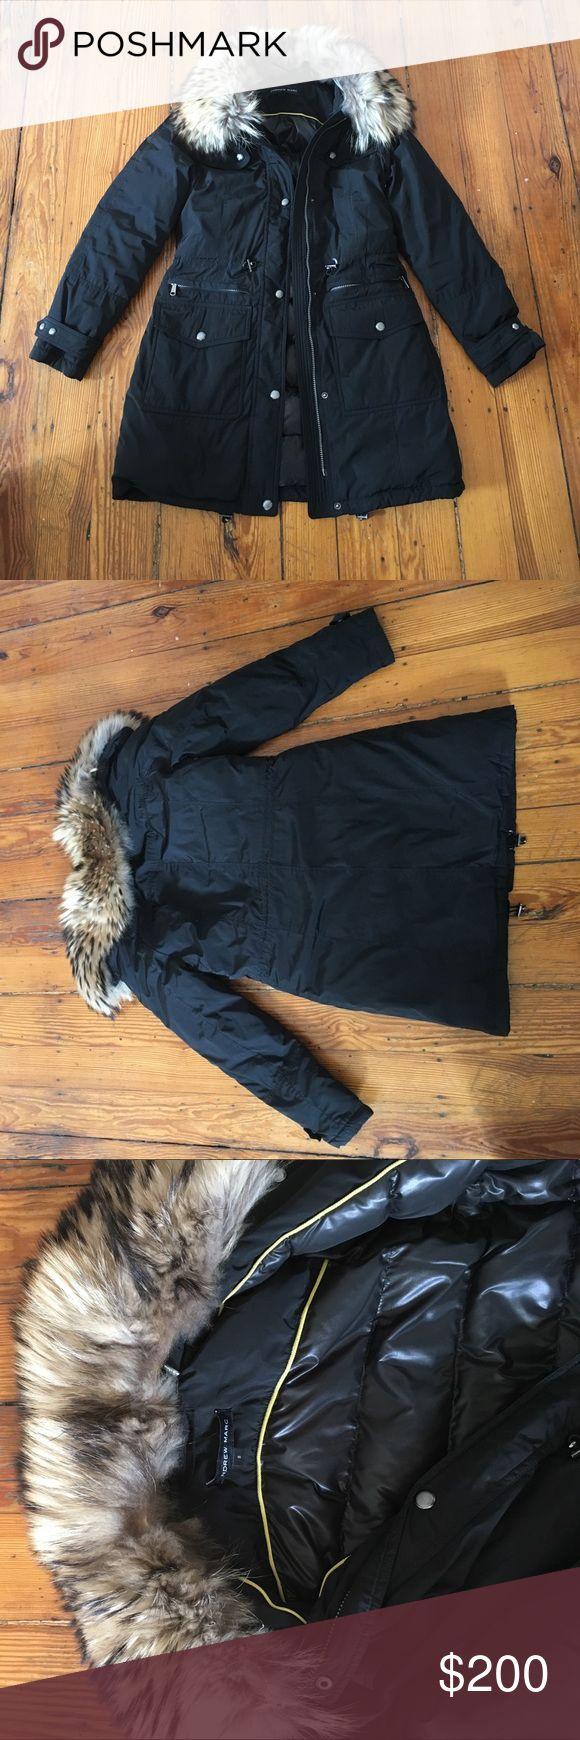 Andrew Marc black down parka with fur collar This Andrew Marc coat has kept me so warm through winter! It hits at mid-thigh to the top of the knees, depending on height. The fur collar is detachable and will keep your neck so warm! You don't need a scarf with the fur collar. It's real raccoon fur. The inside has a puffy lining. This is a black winter parka. Andrew Marc Jackets & Coats Puffers